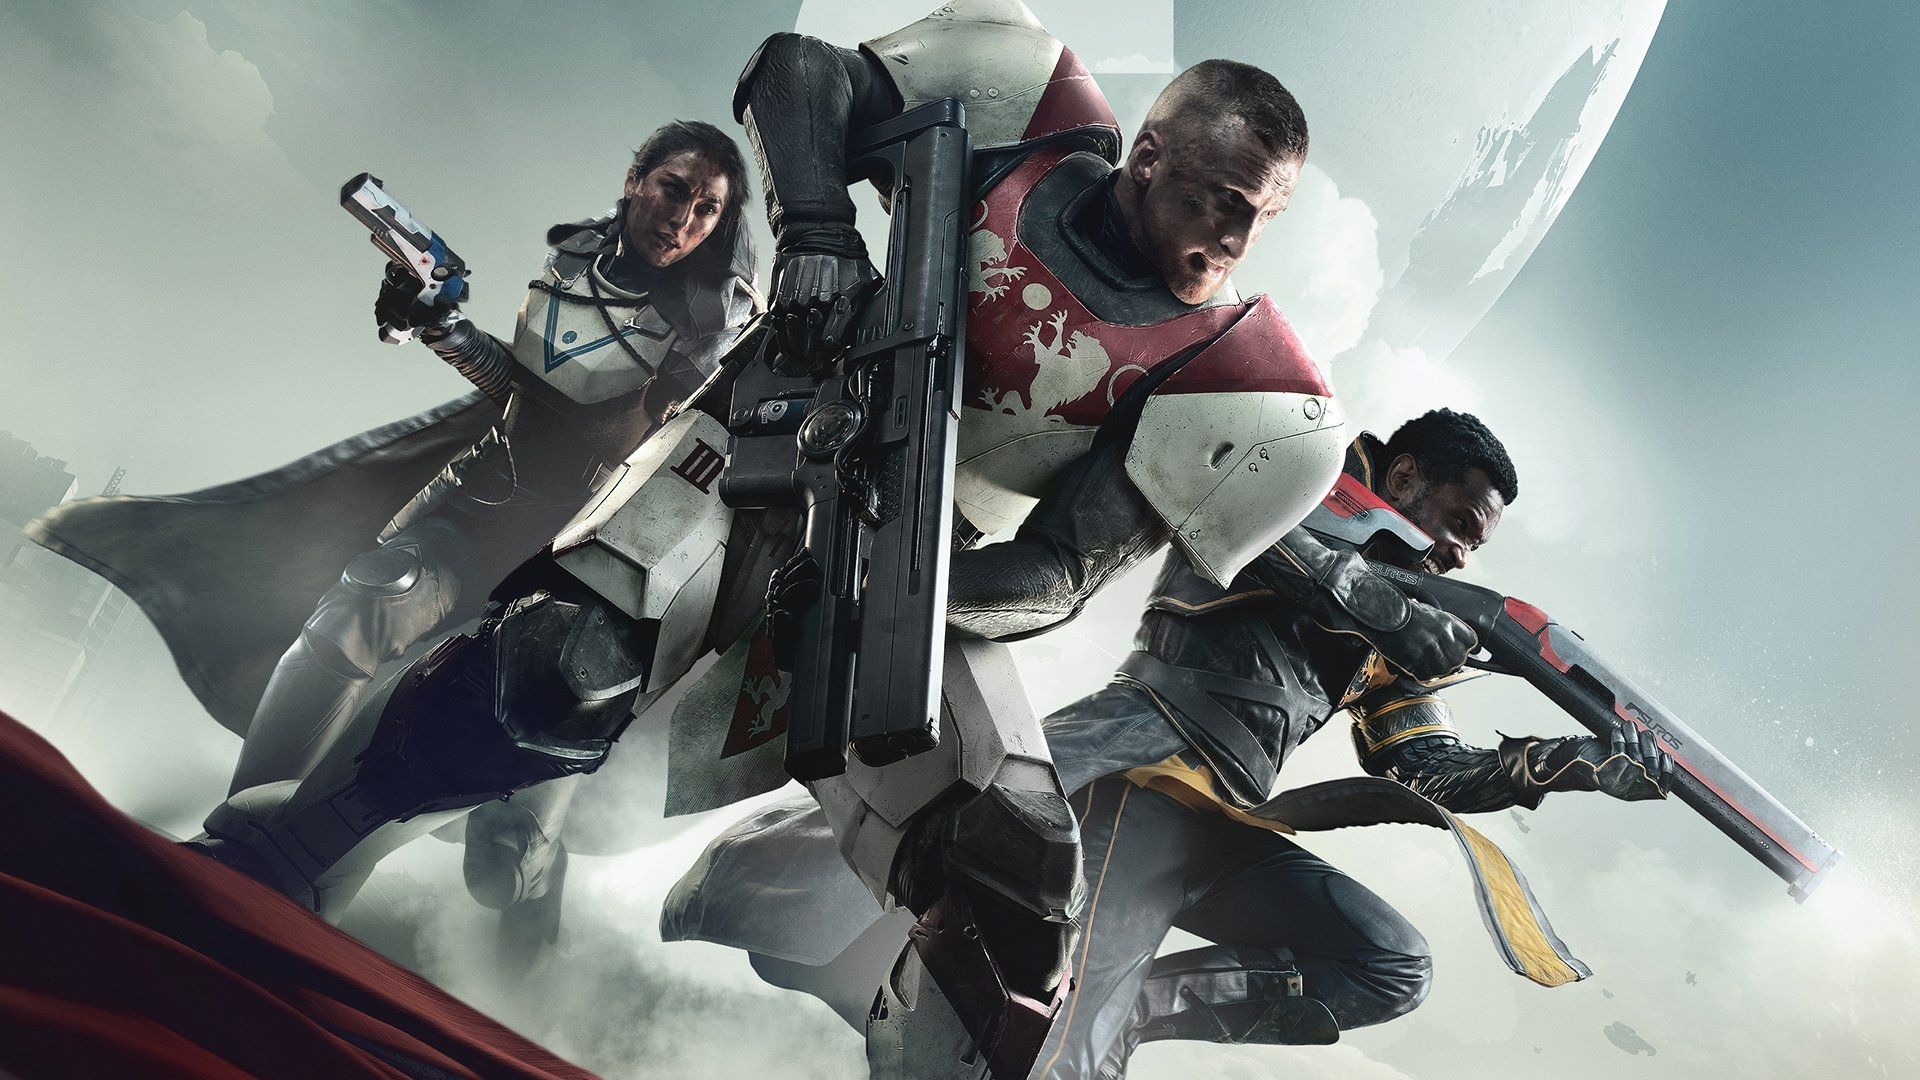 Destiny 2 for PC will be exclusive to Blizzard's Battle.net